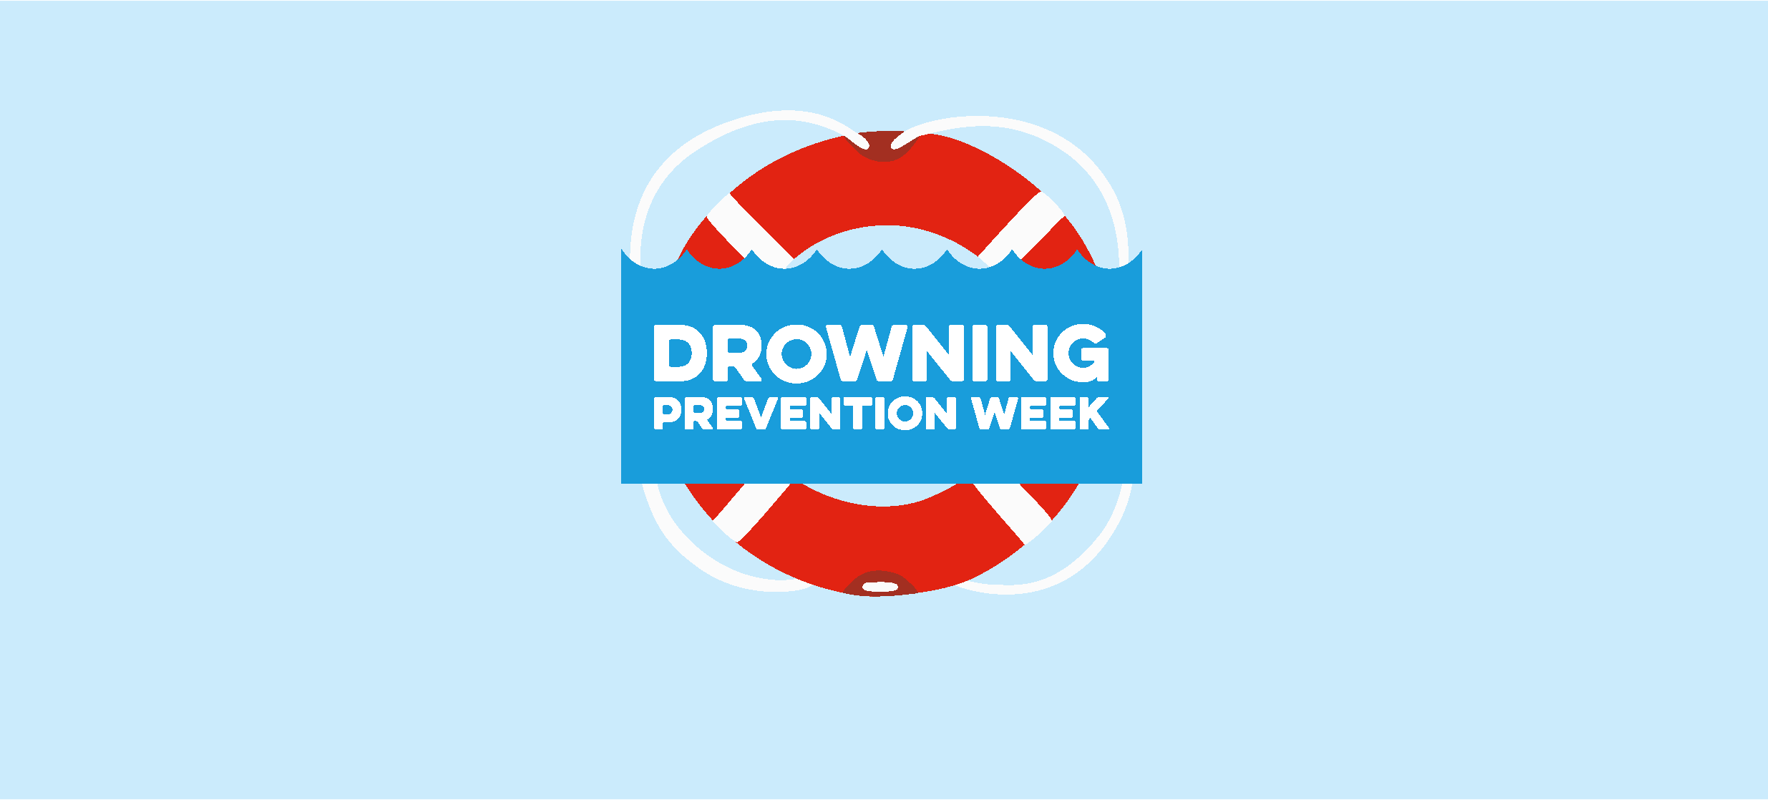 Terrifying near drowning accidents form target of drowning prevention campaign